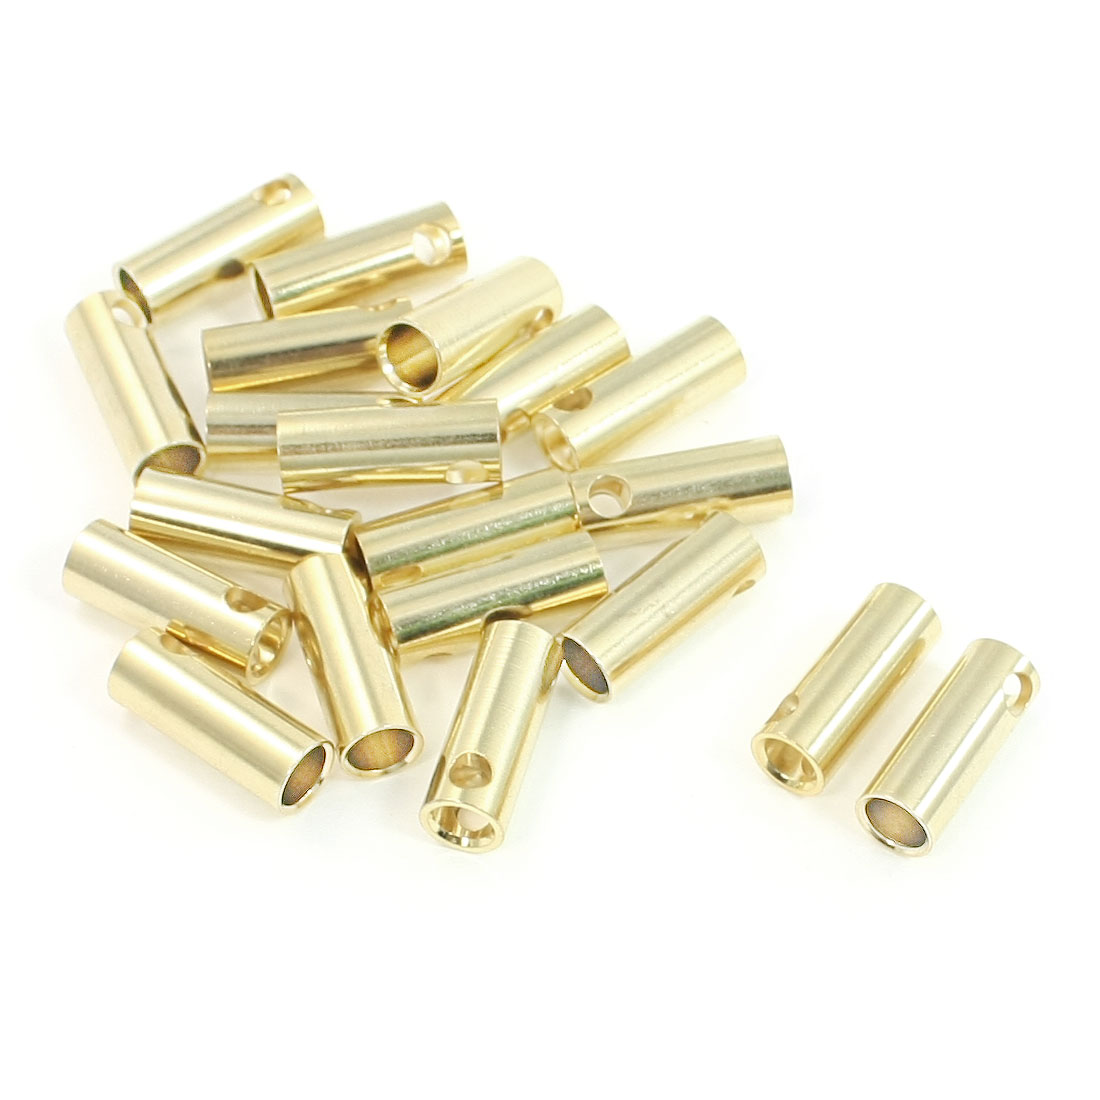 20 PCS 5.5mm Gold Tone Connector Banana Female for RC Airplane